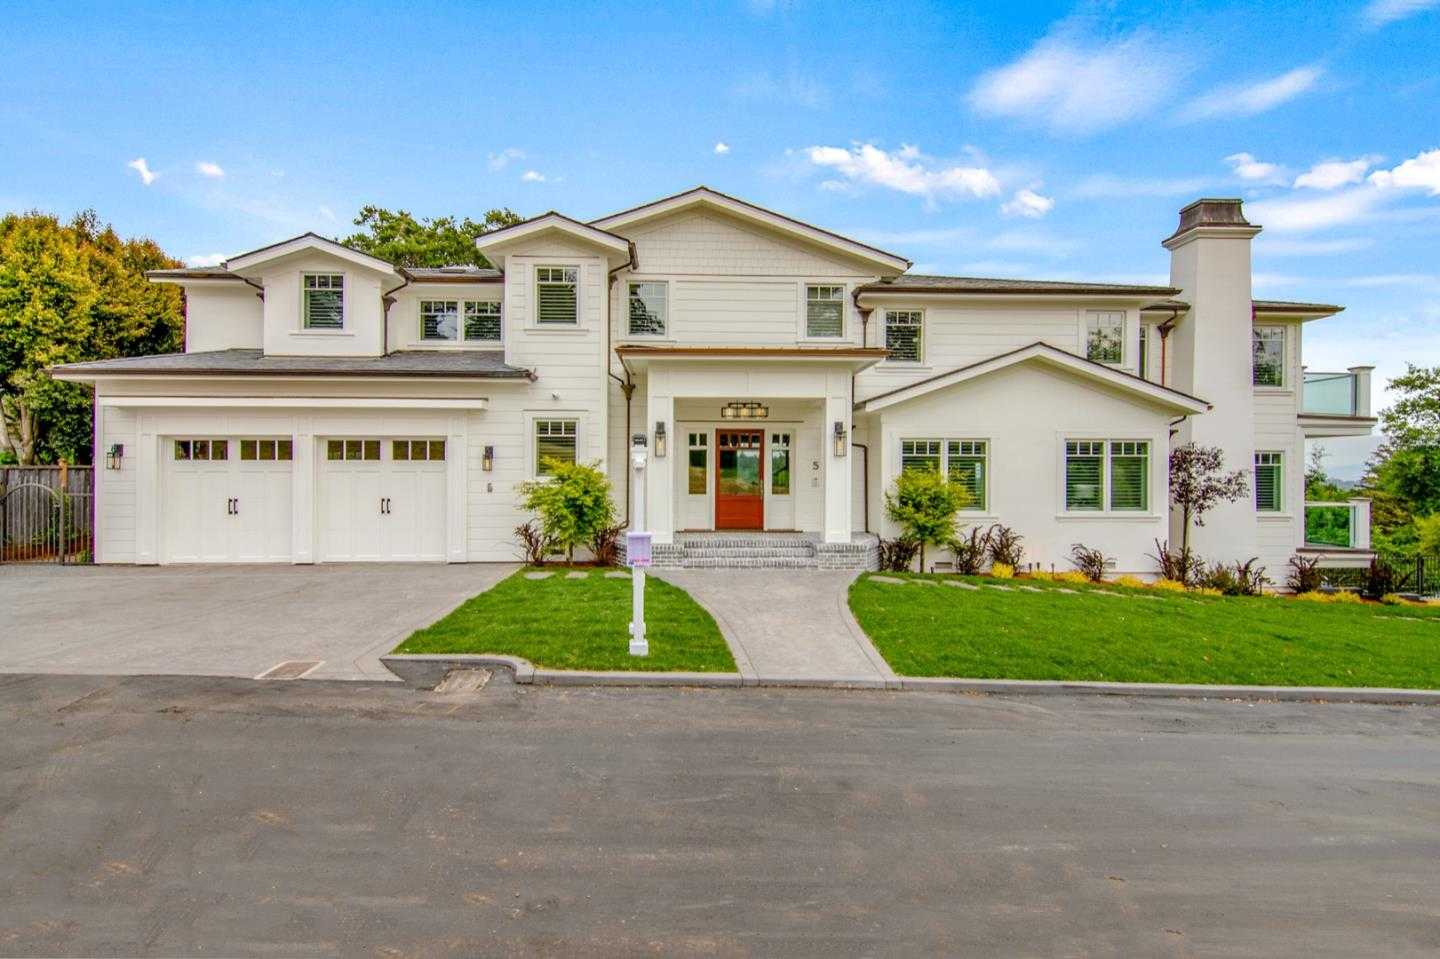 $3,295,000 - 3Br/4Ba -  for Sale in Santa Cruz